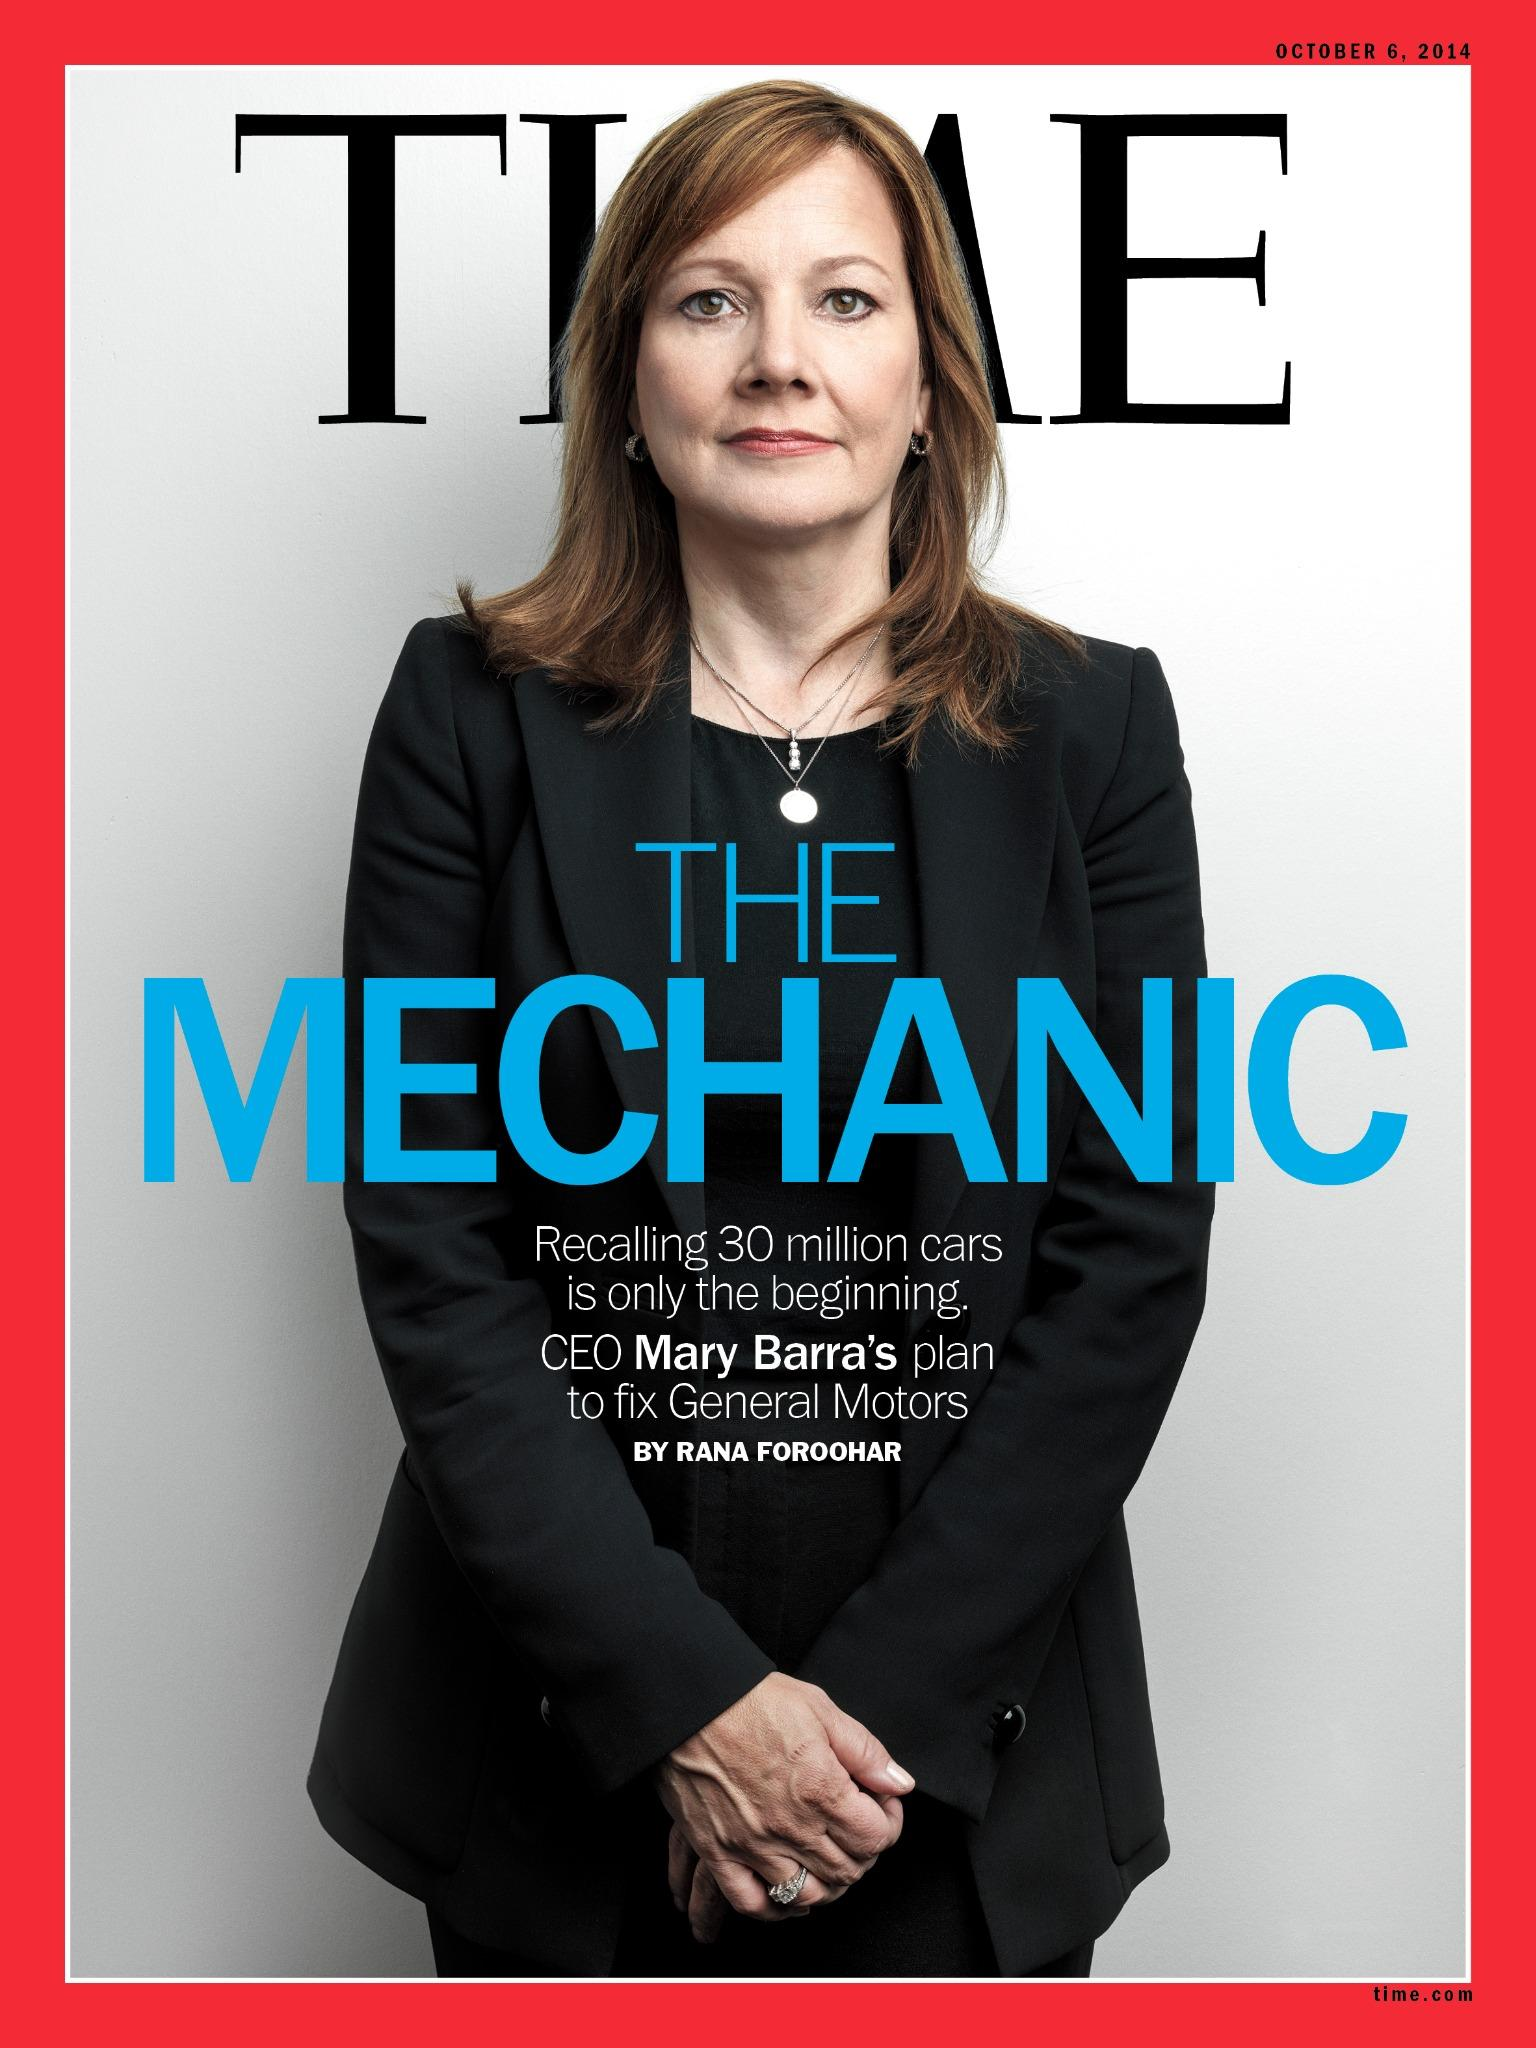 RT @TIME: TIME?s new cover: The Mechanic. CEO Mary Barra?s plan to fix General Motors http://t.co/ic90CUmSv6 http://t.co/ctNFu08x9k